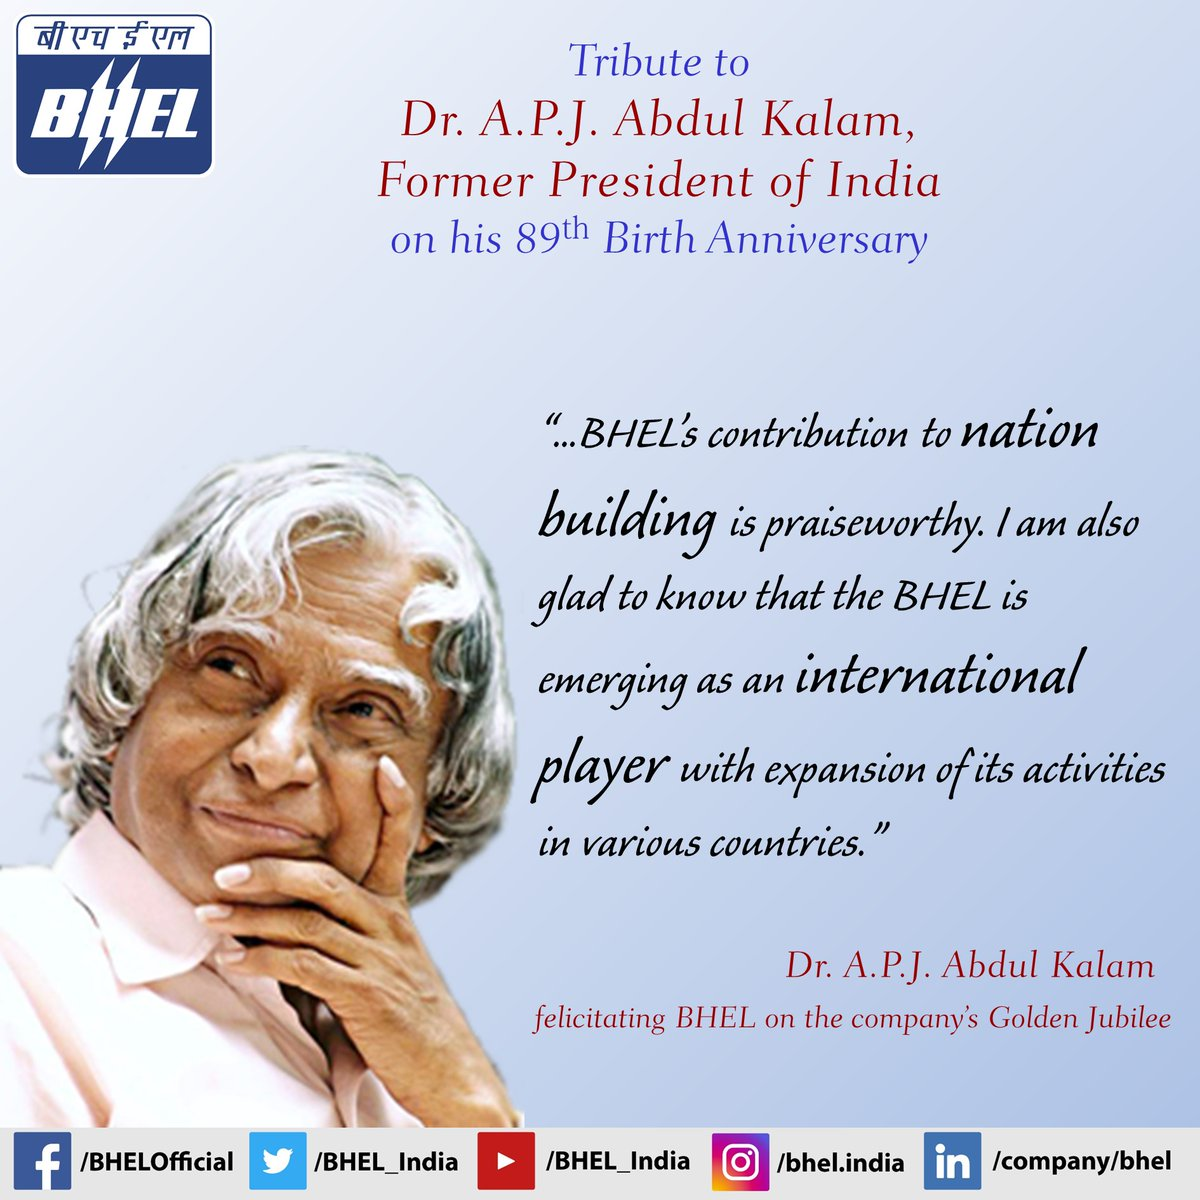 BHEL pays tribute to #DrAPJAbdulKalam, Former President of India on his #89thBirthAnniversary  #MissileManofIndia #MissileMan  #Abdulkalam #abdulkalambirthday https://t.co/lMfAsDV4R2